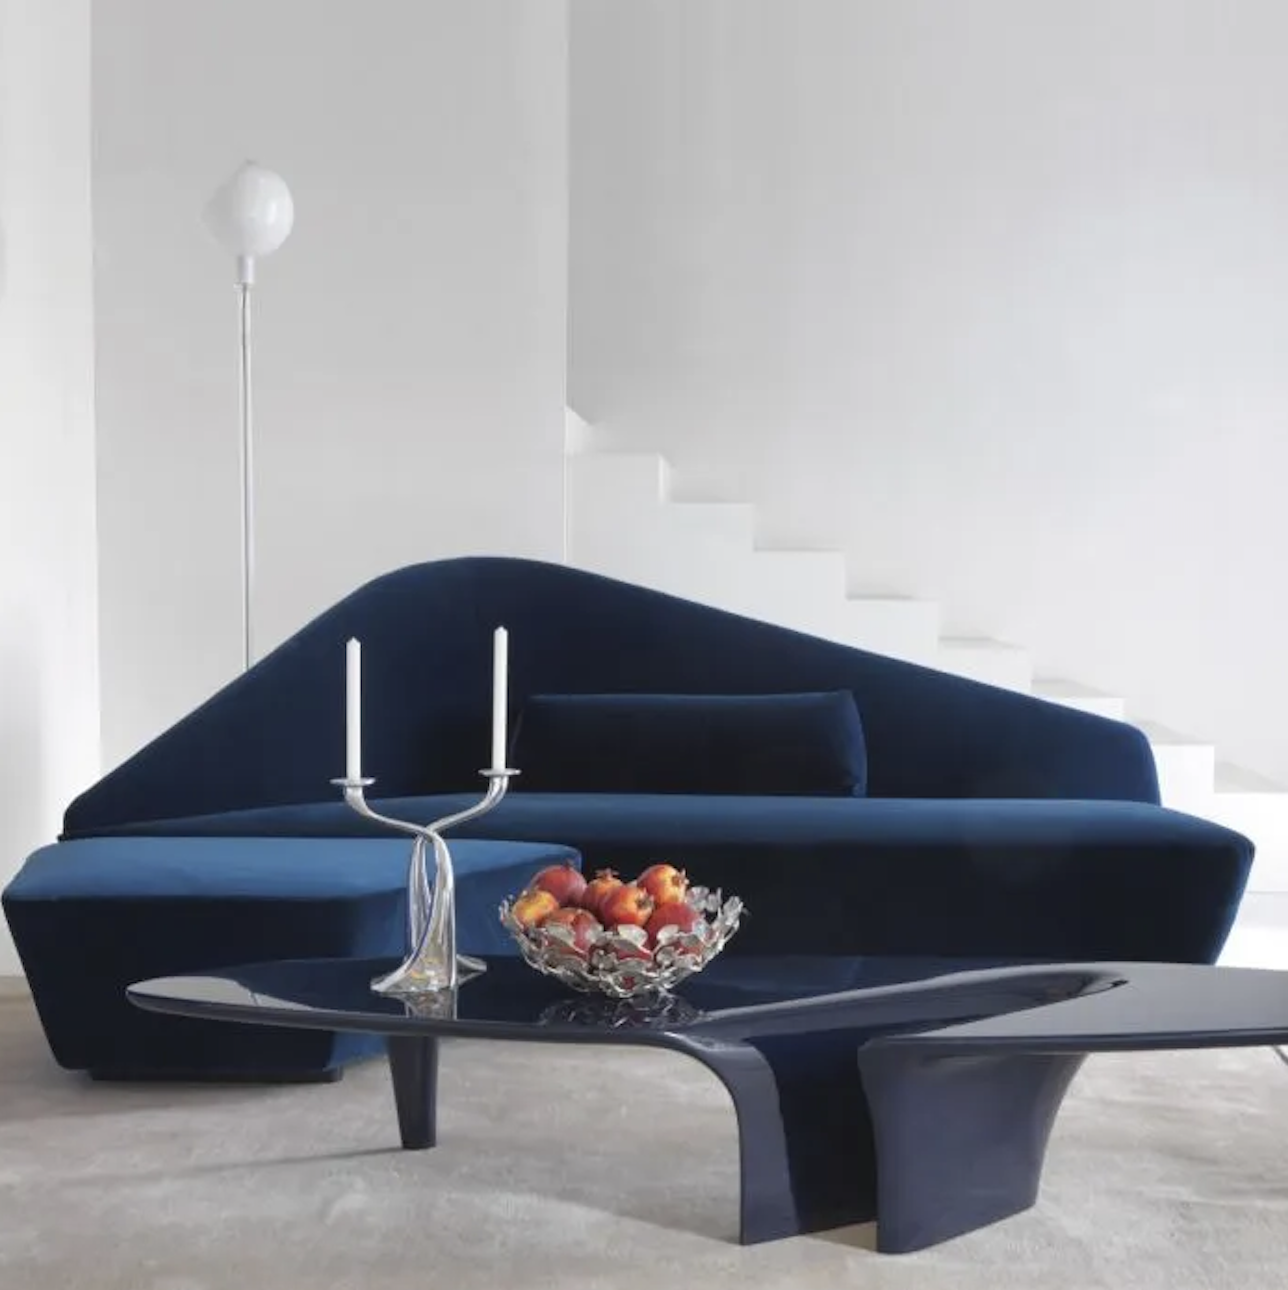 Verlaine Sofa - Lievore Altherr Molina typically designs harmonious and balanced items as well as intense shapes balanced in a peaceful tension. For Driade they have designed Verlaine, a sofa complete with a square ottoman sporting an exceptionally expressive versatility that reminds of organic and flowing shapes. Its fascinating silhouette is an irresistible attraction inviting the viewer to appreciate the comfortable seat. Verlaine becomes the main aesthetic detail of the living room; it entices the eyes and grabs the attention.  | Matter of Stuff